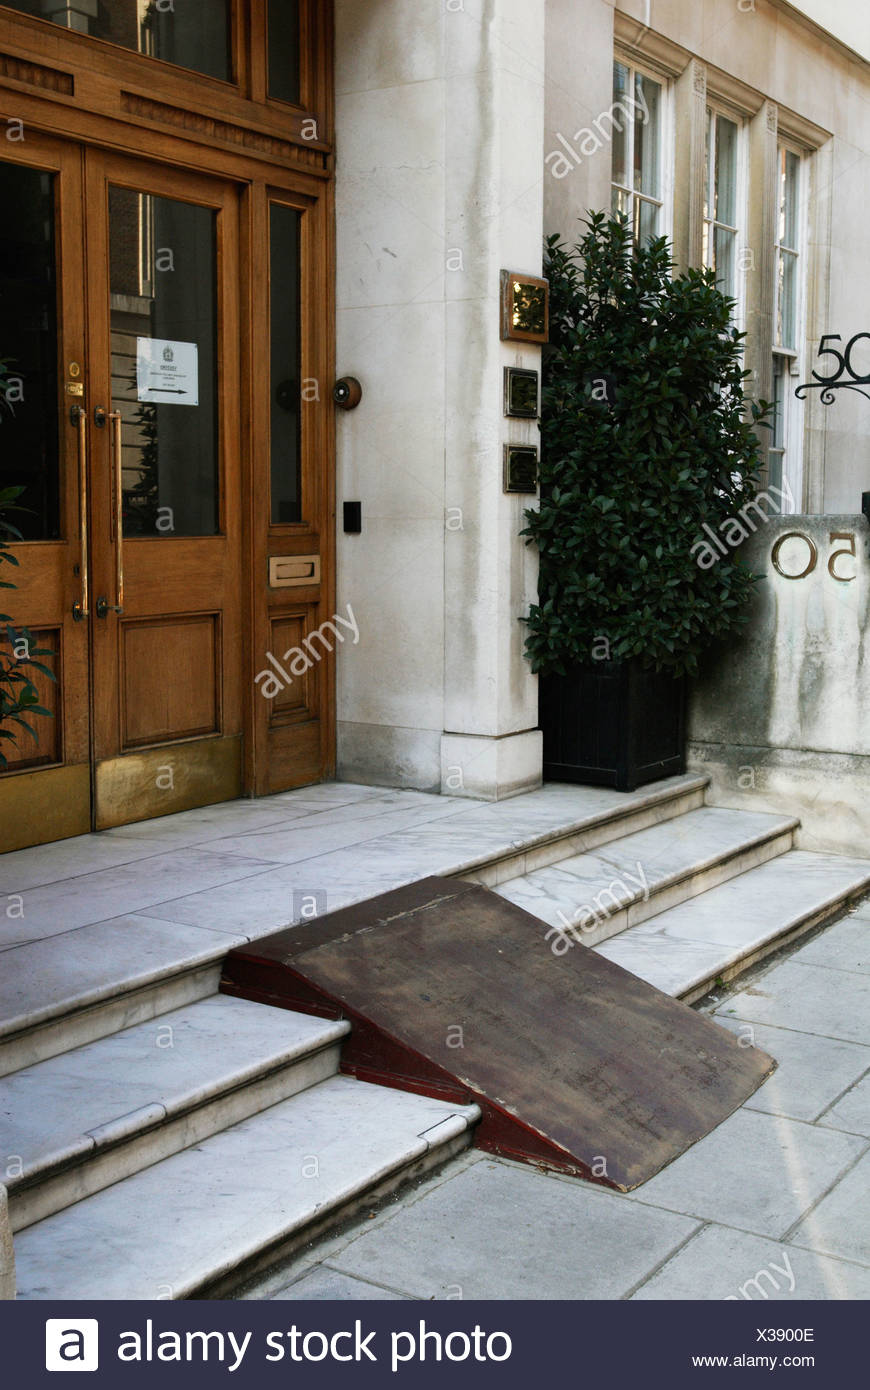 Ramp on steps to provide wheelchair access - Stock Image